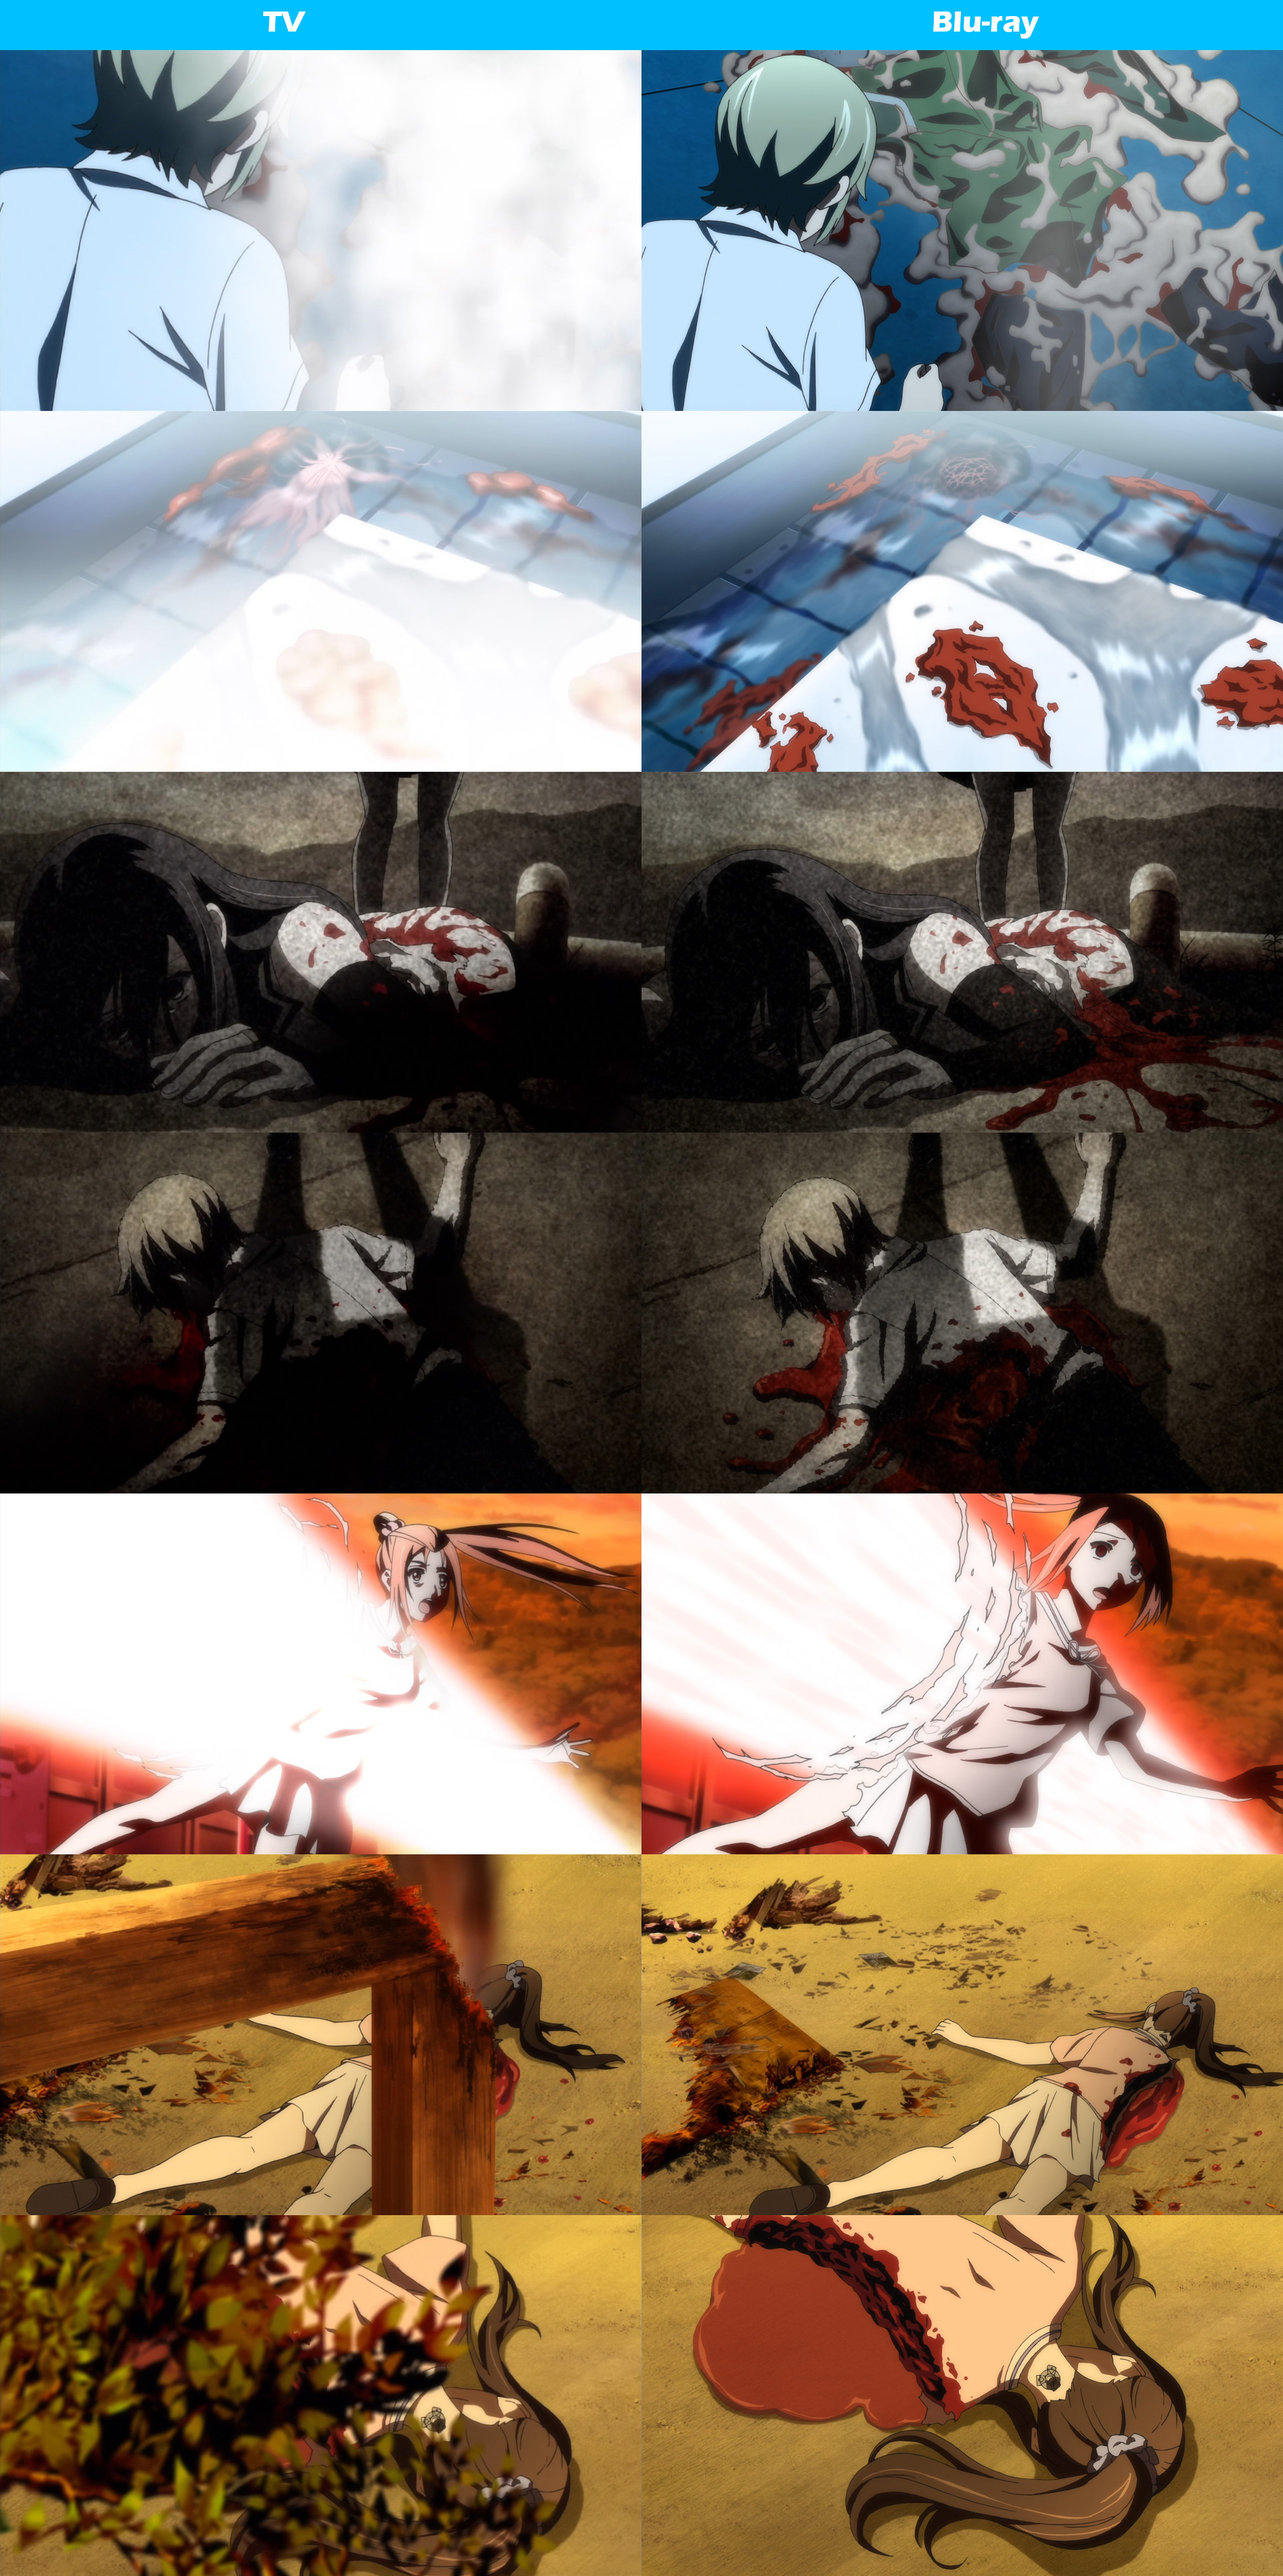 Gokukoku-no-Brynhildr-TV-and-Blu-ray-Comparisons-Gore-3